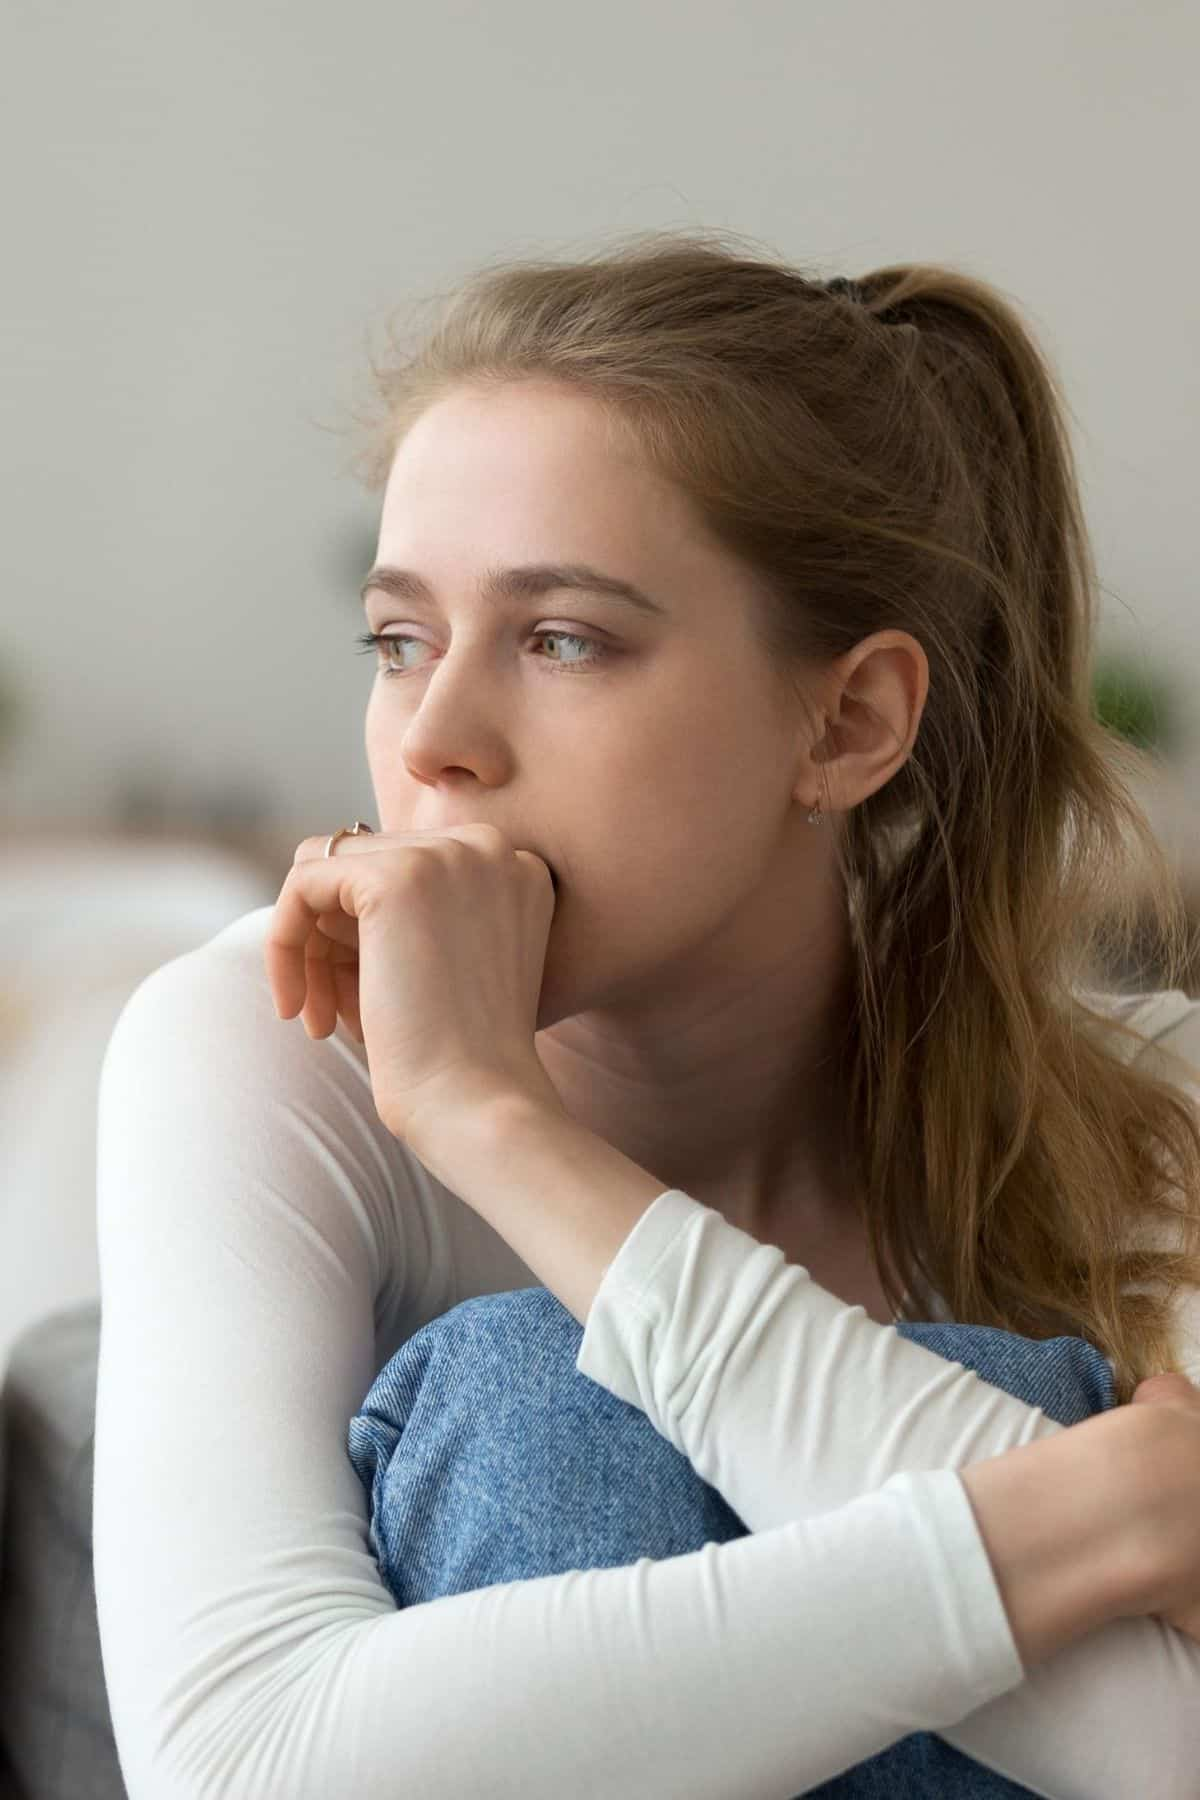 woman sitting on a chair with a worried look on her face